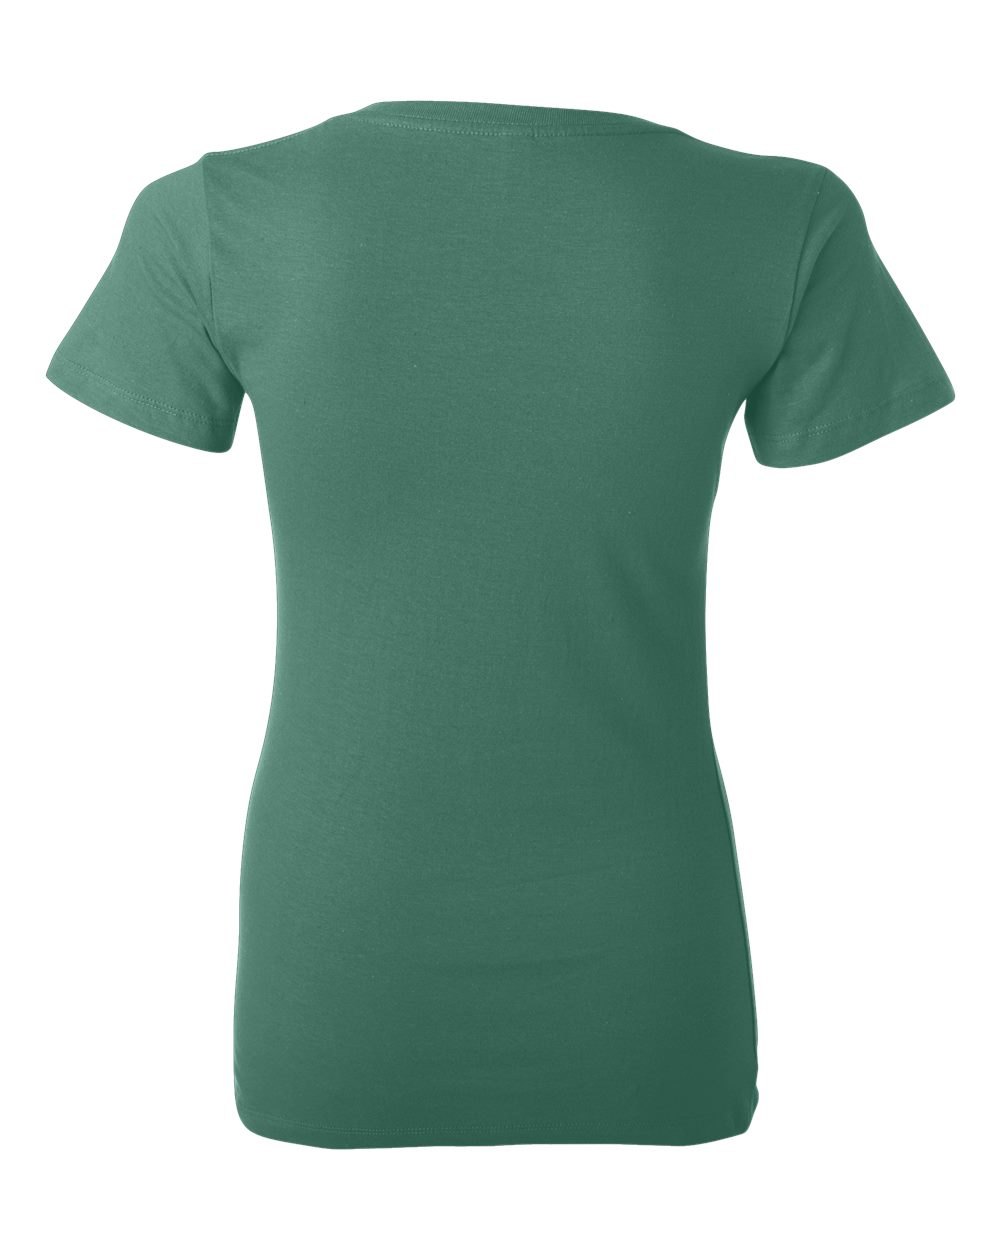 Bella-Canvas-Women-039-s-Jersey-Short-Sleeve-Deep-V-Neck-T-Shirt-B6035-S-2XL thumbnail 76